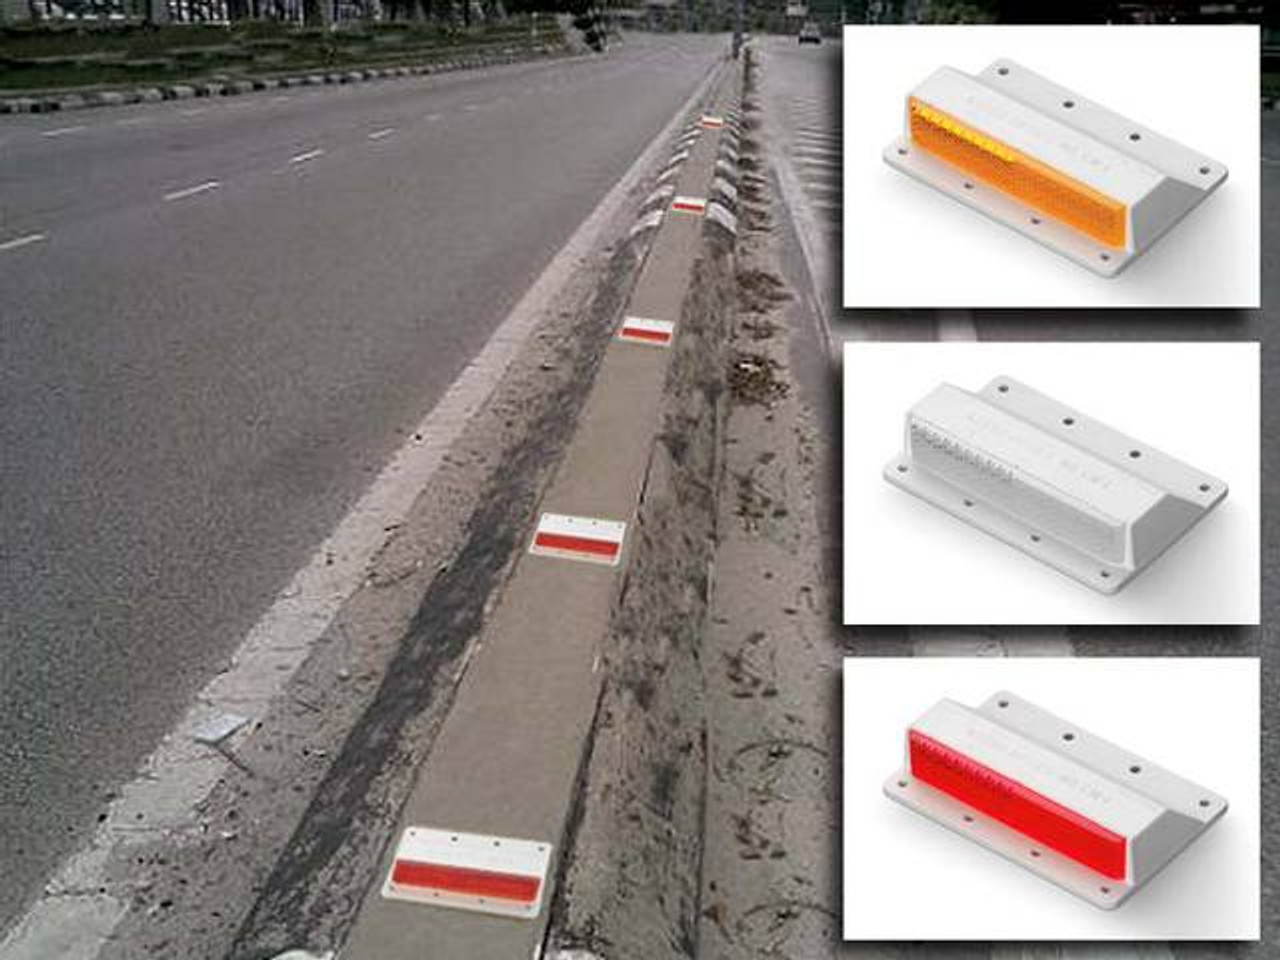 Lot of 10 1-Way White Pexco 4 Flexible Temporary Raised Pavement Marker